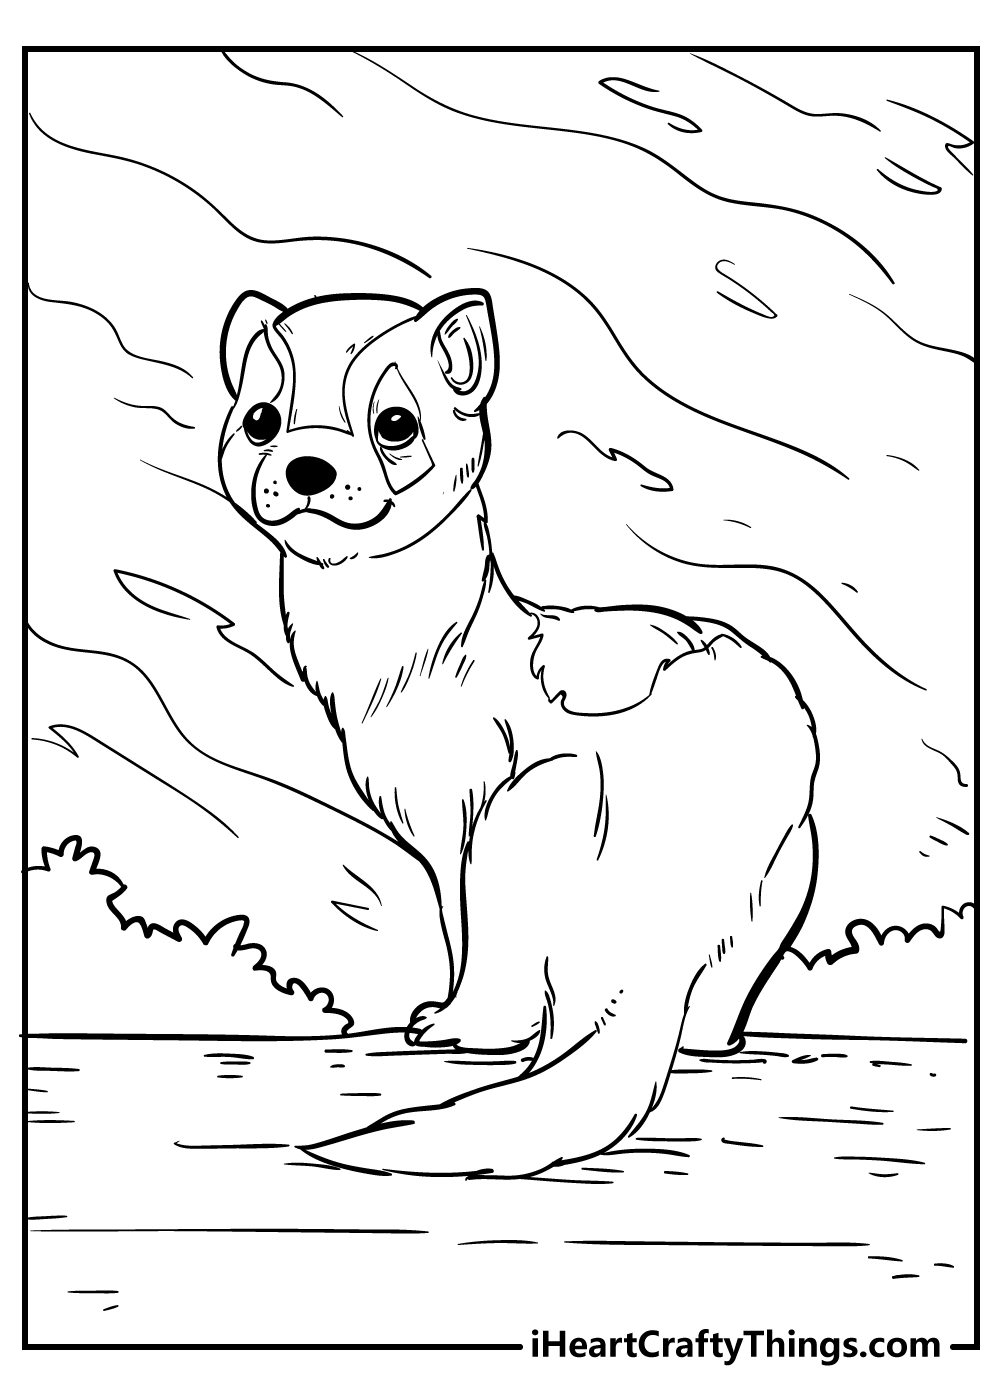 cute ferret animal coloring pages free download